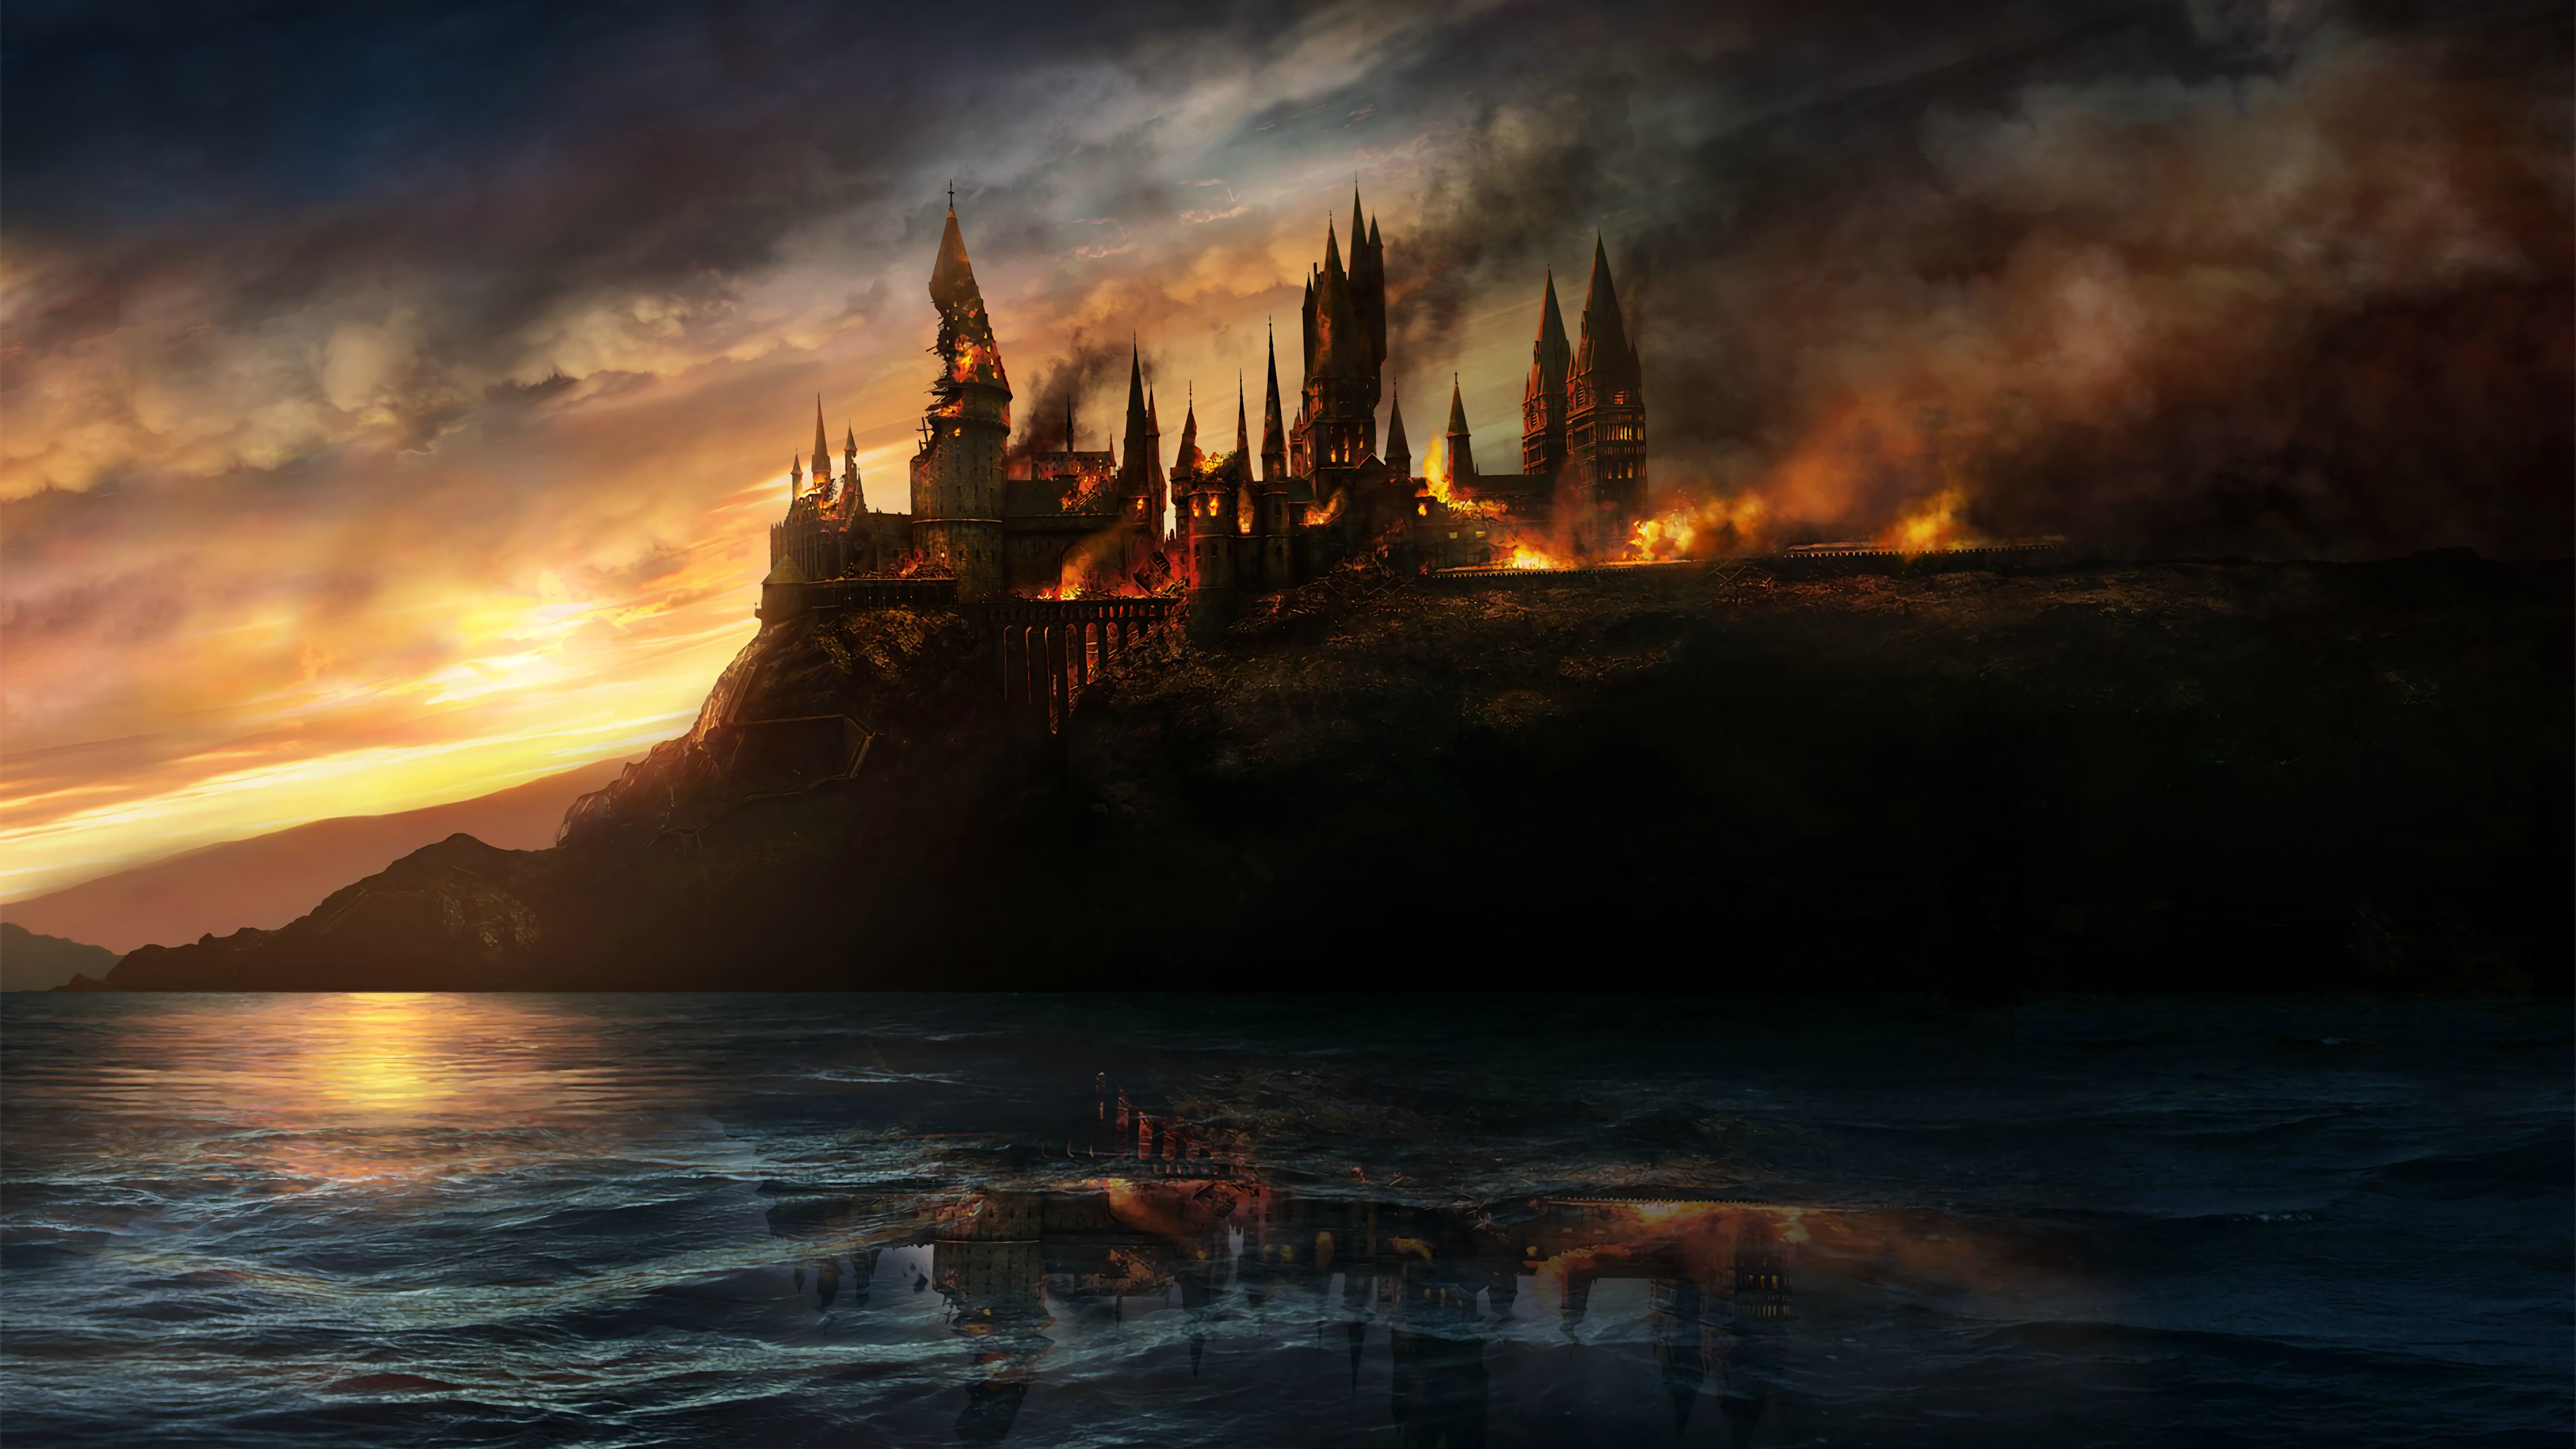 General 3800x2138 Hogwarts Harry Potter movies fire burning